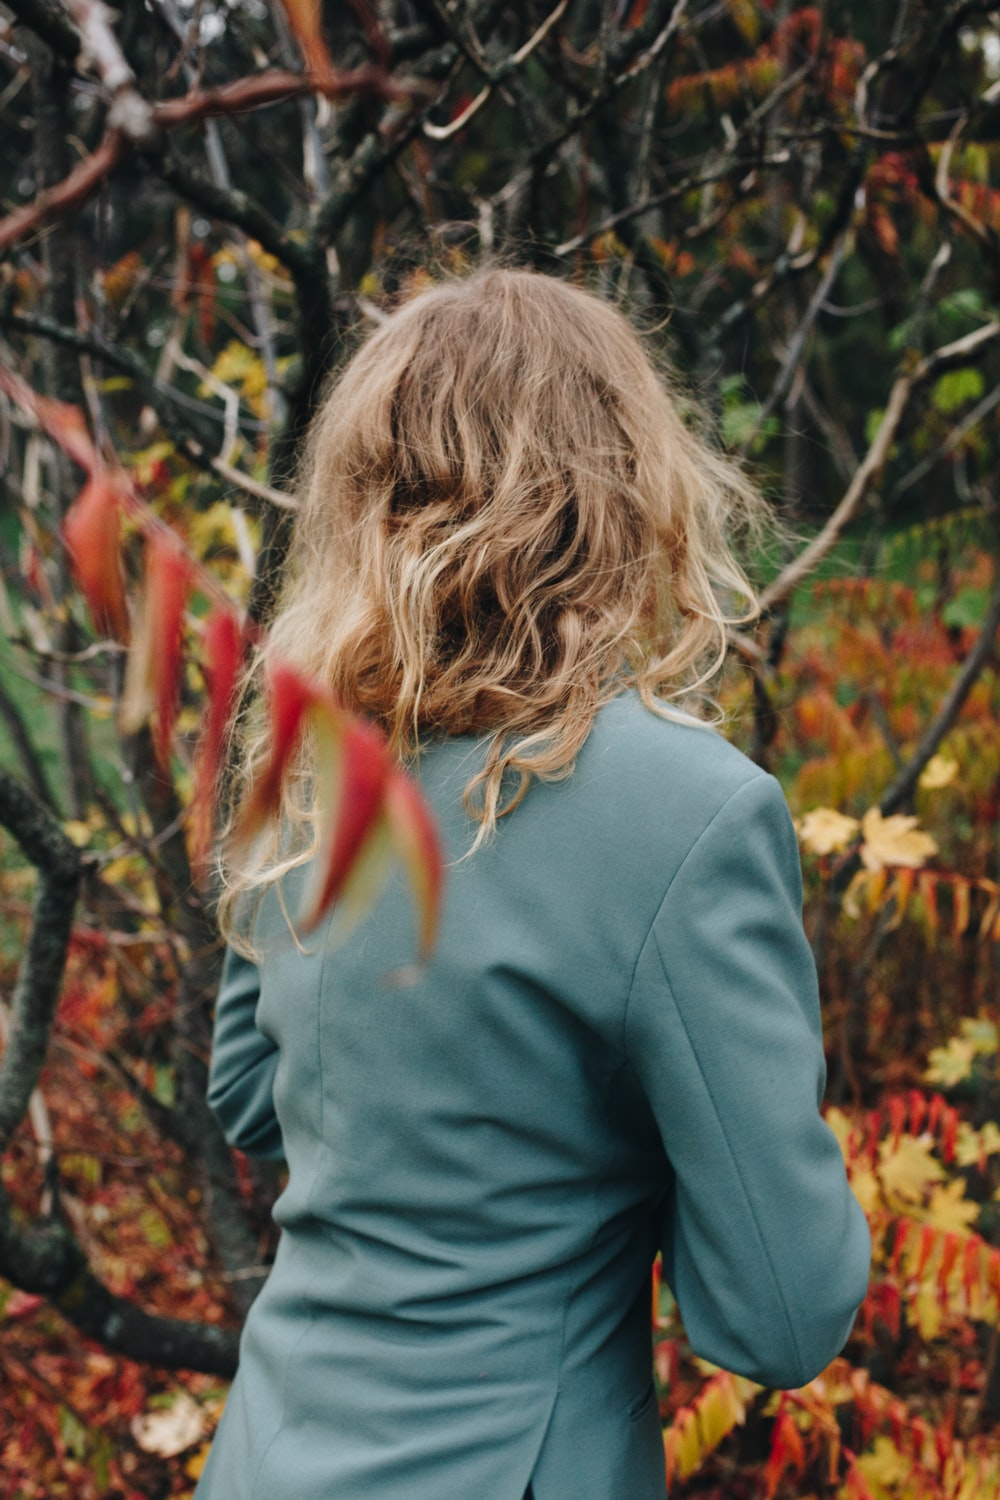 woman in gray long sleeve shirt standing near brown and green plants during daytime